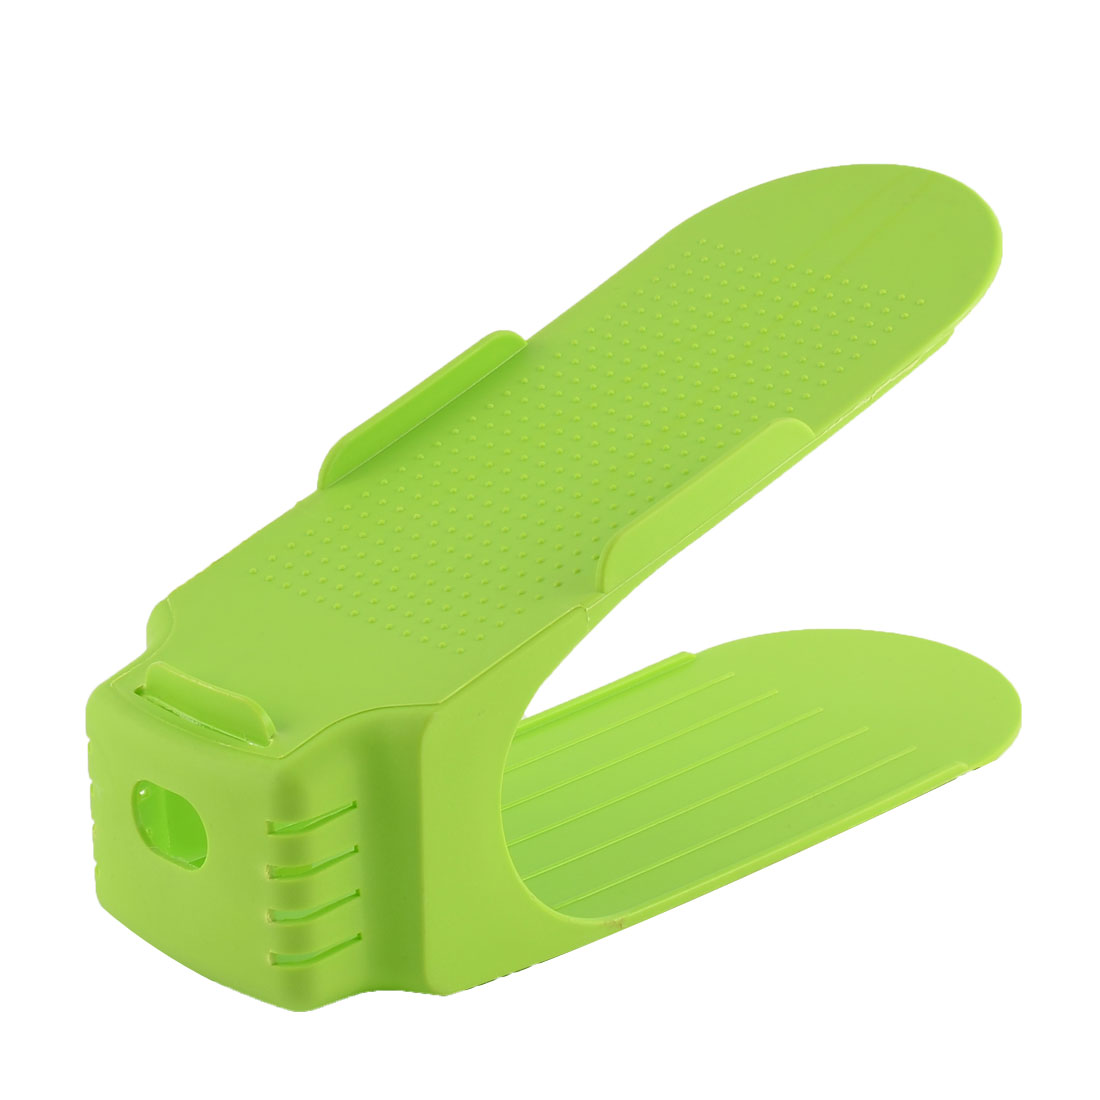 Household Plastic Space Saver Heel Shoe Holder Organizer Rack Collector Stacker Storage Green